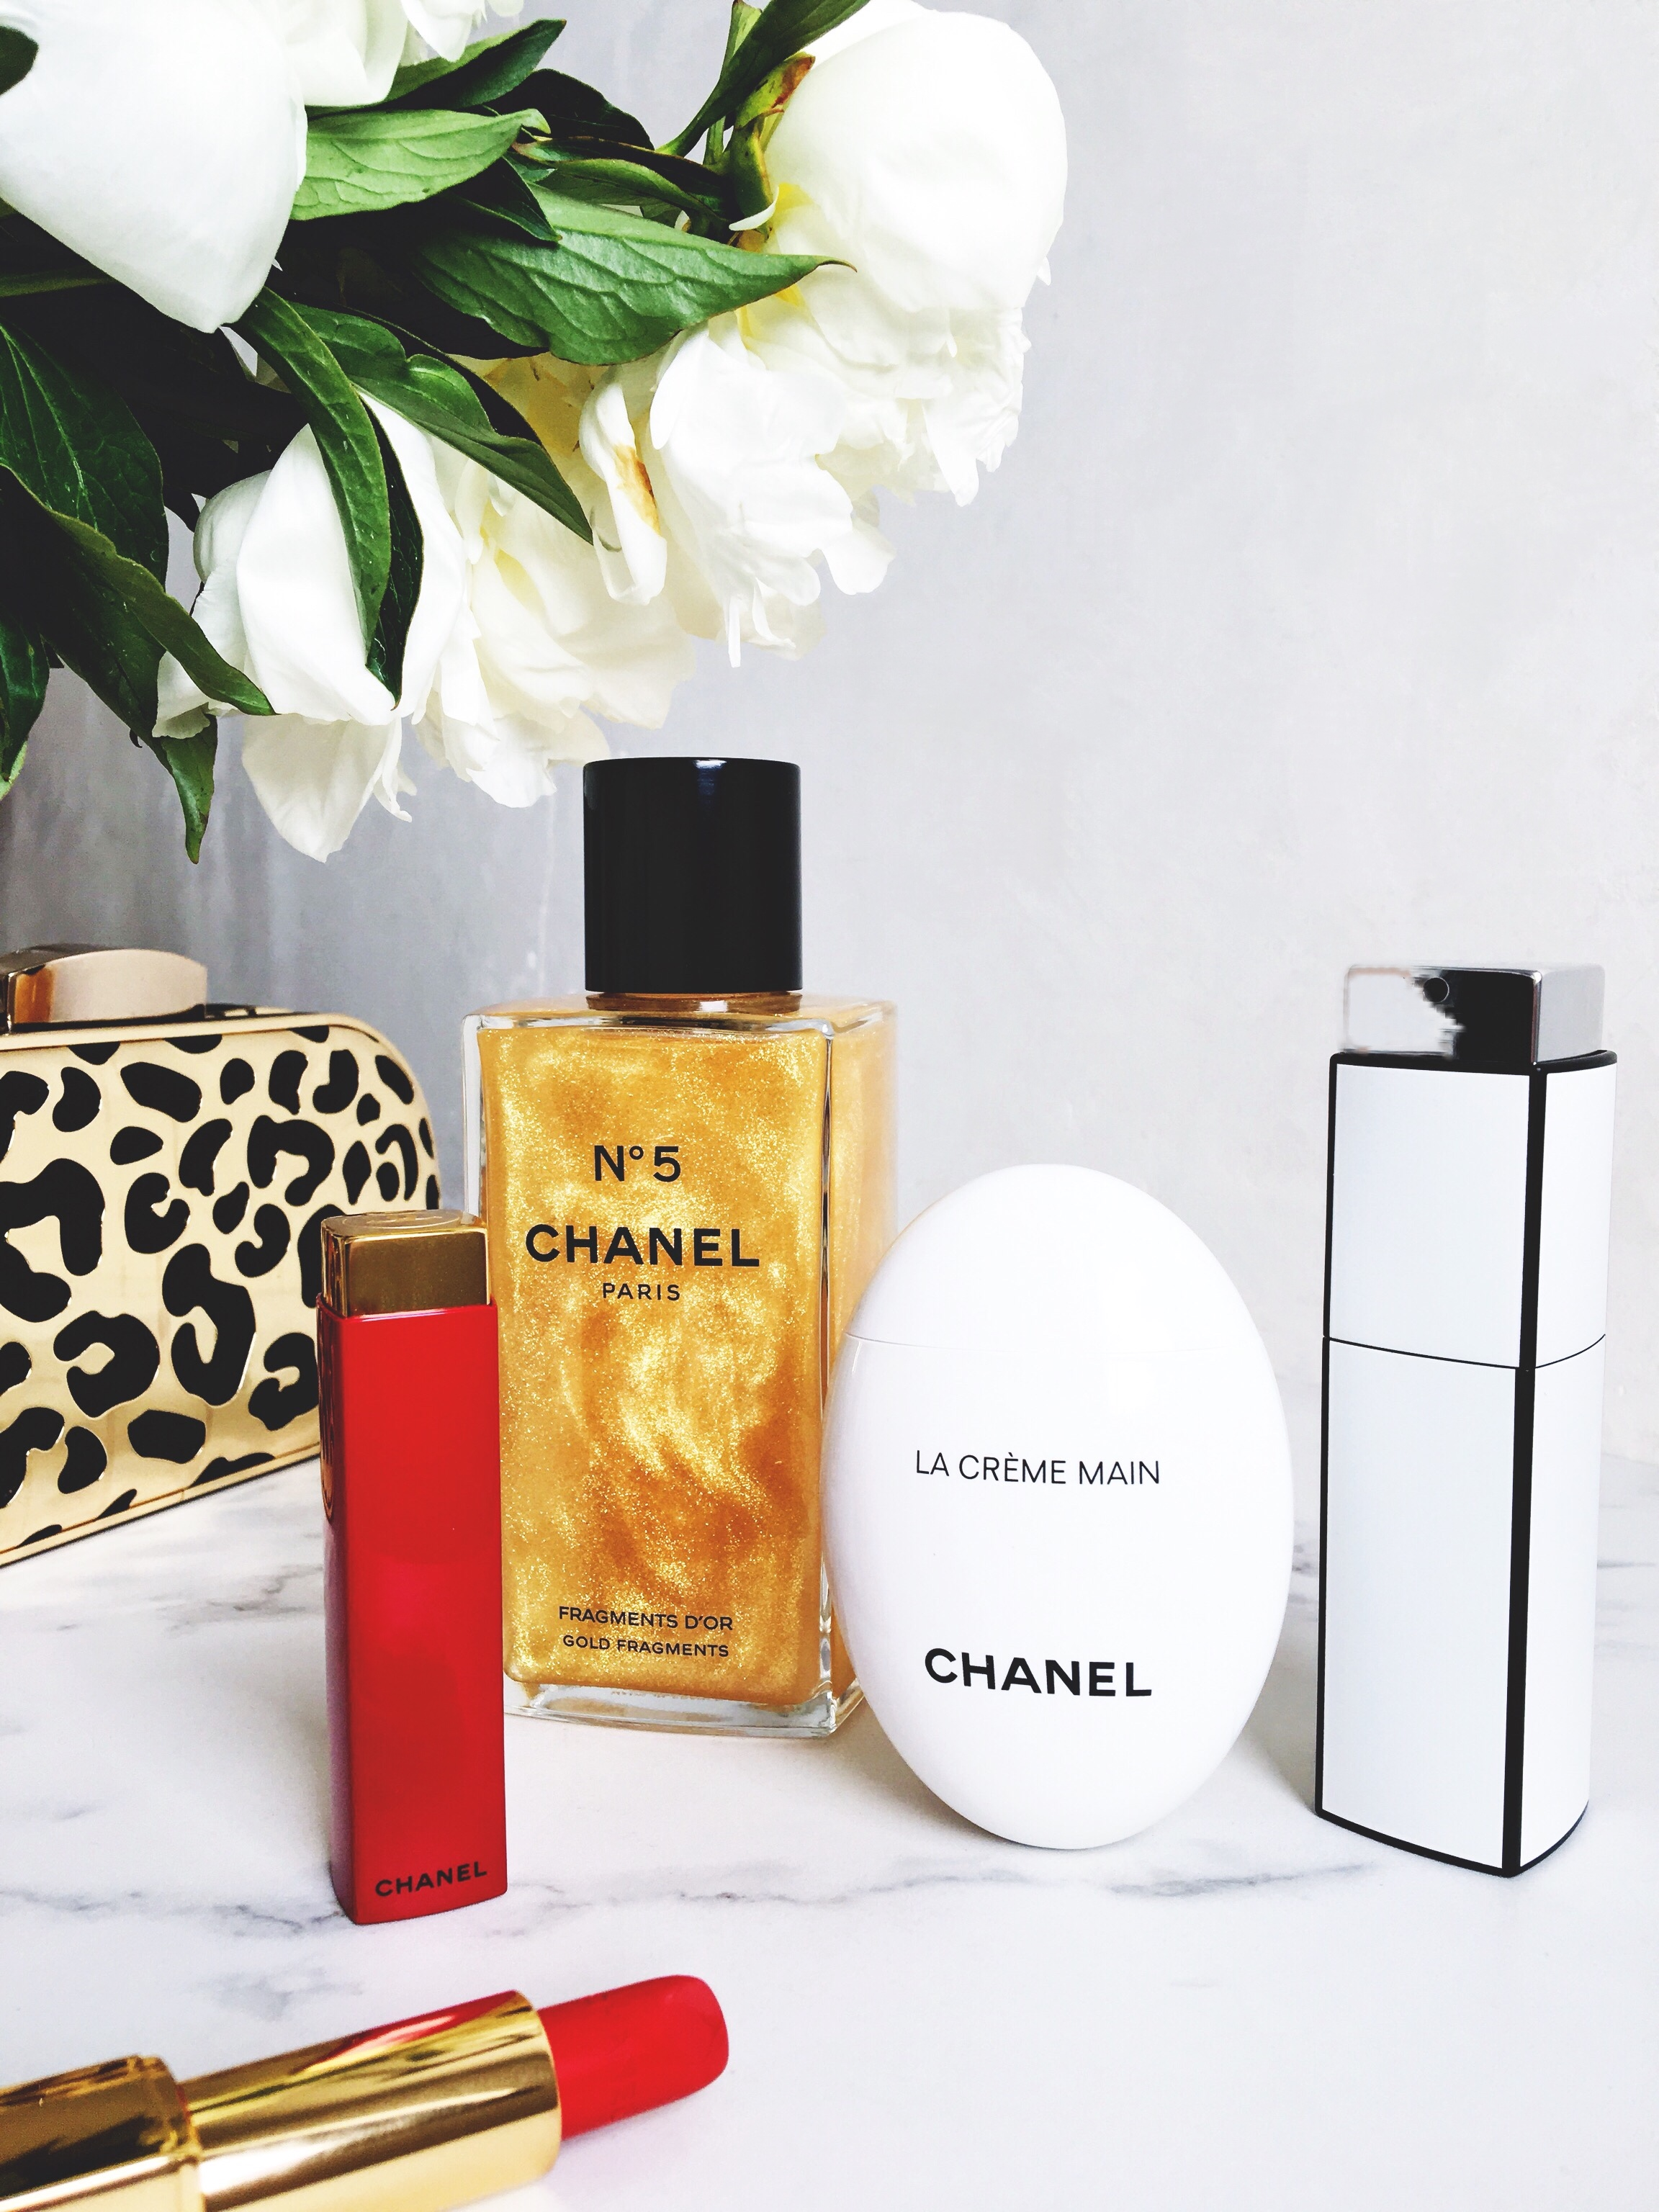 You Canu0027t Go Wrong With CHANEL. This Season, The Brand Has Some Truly  Delightful Products That I Know Youu0027re Going ...